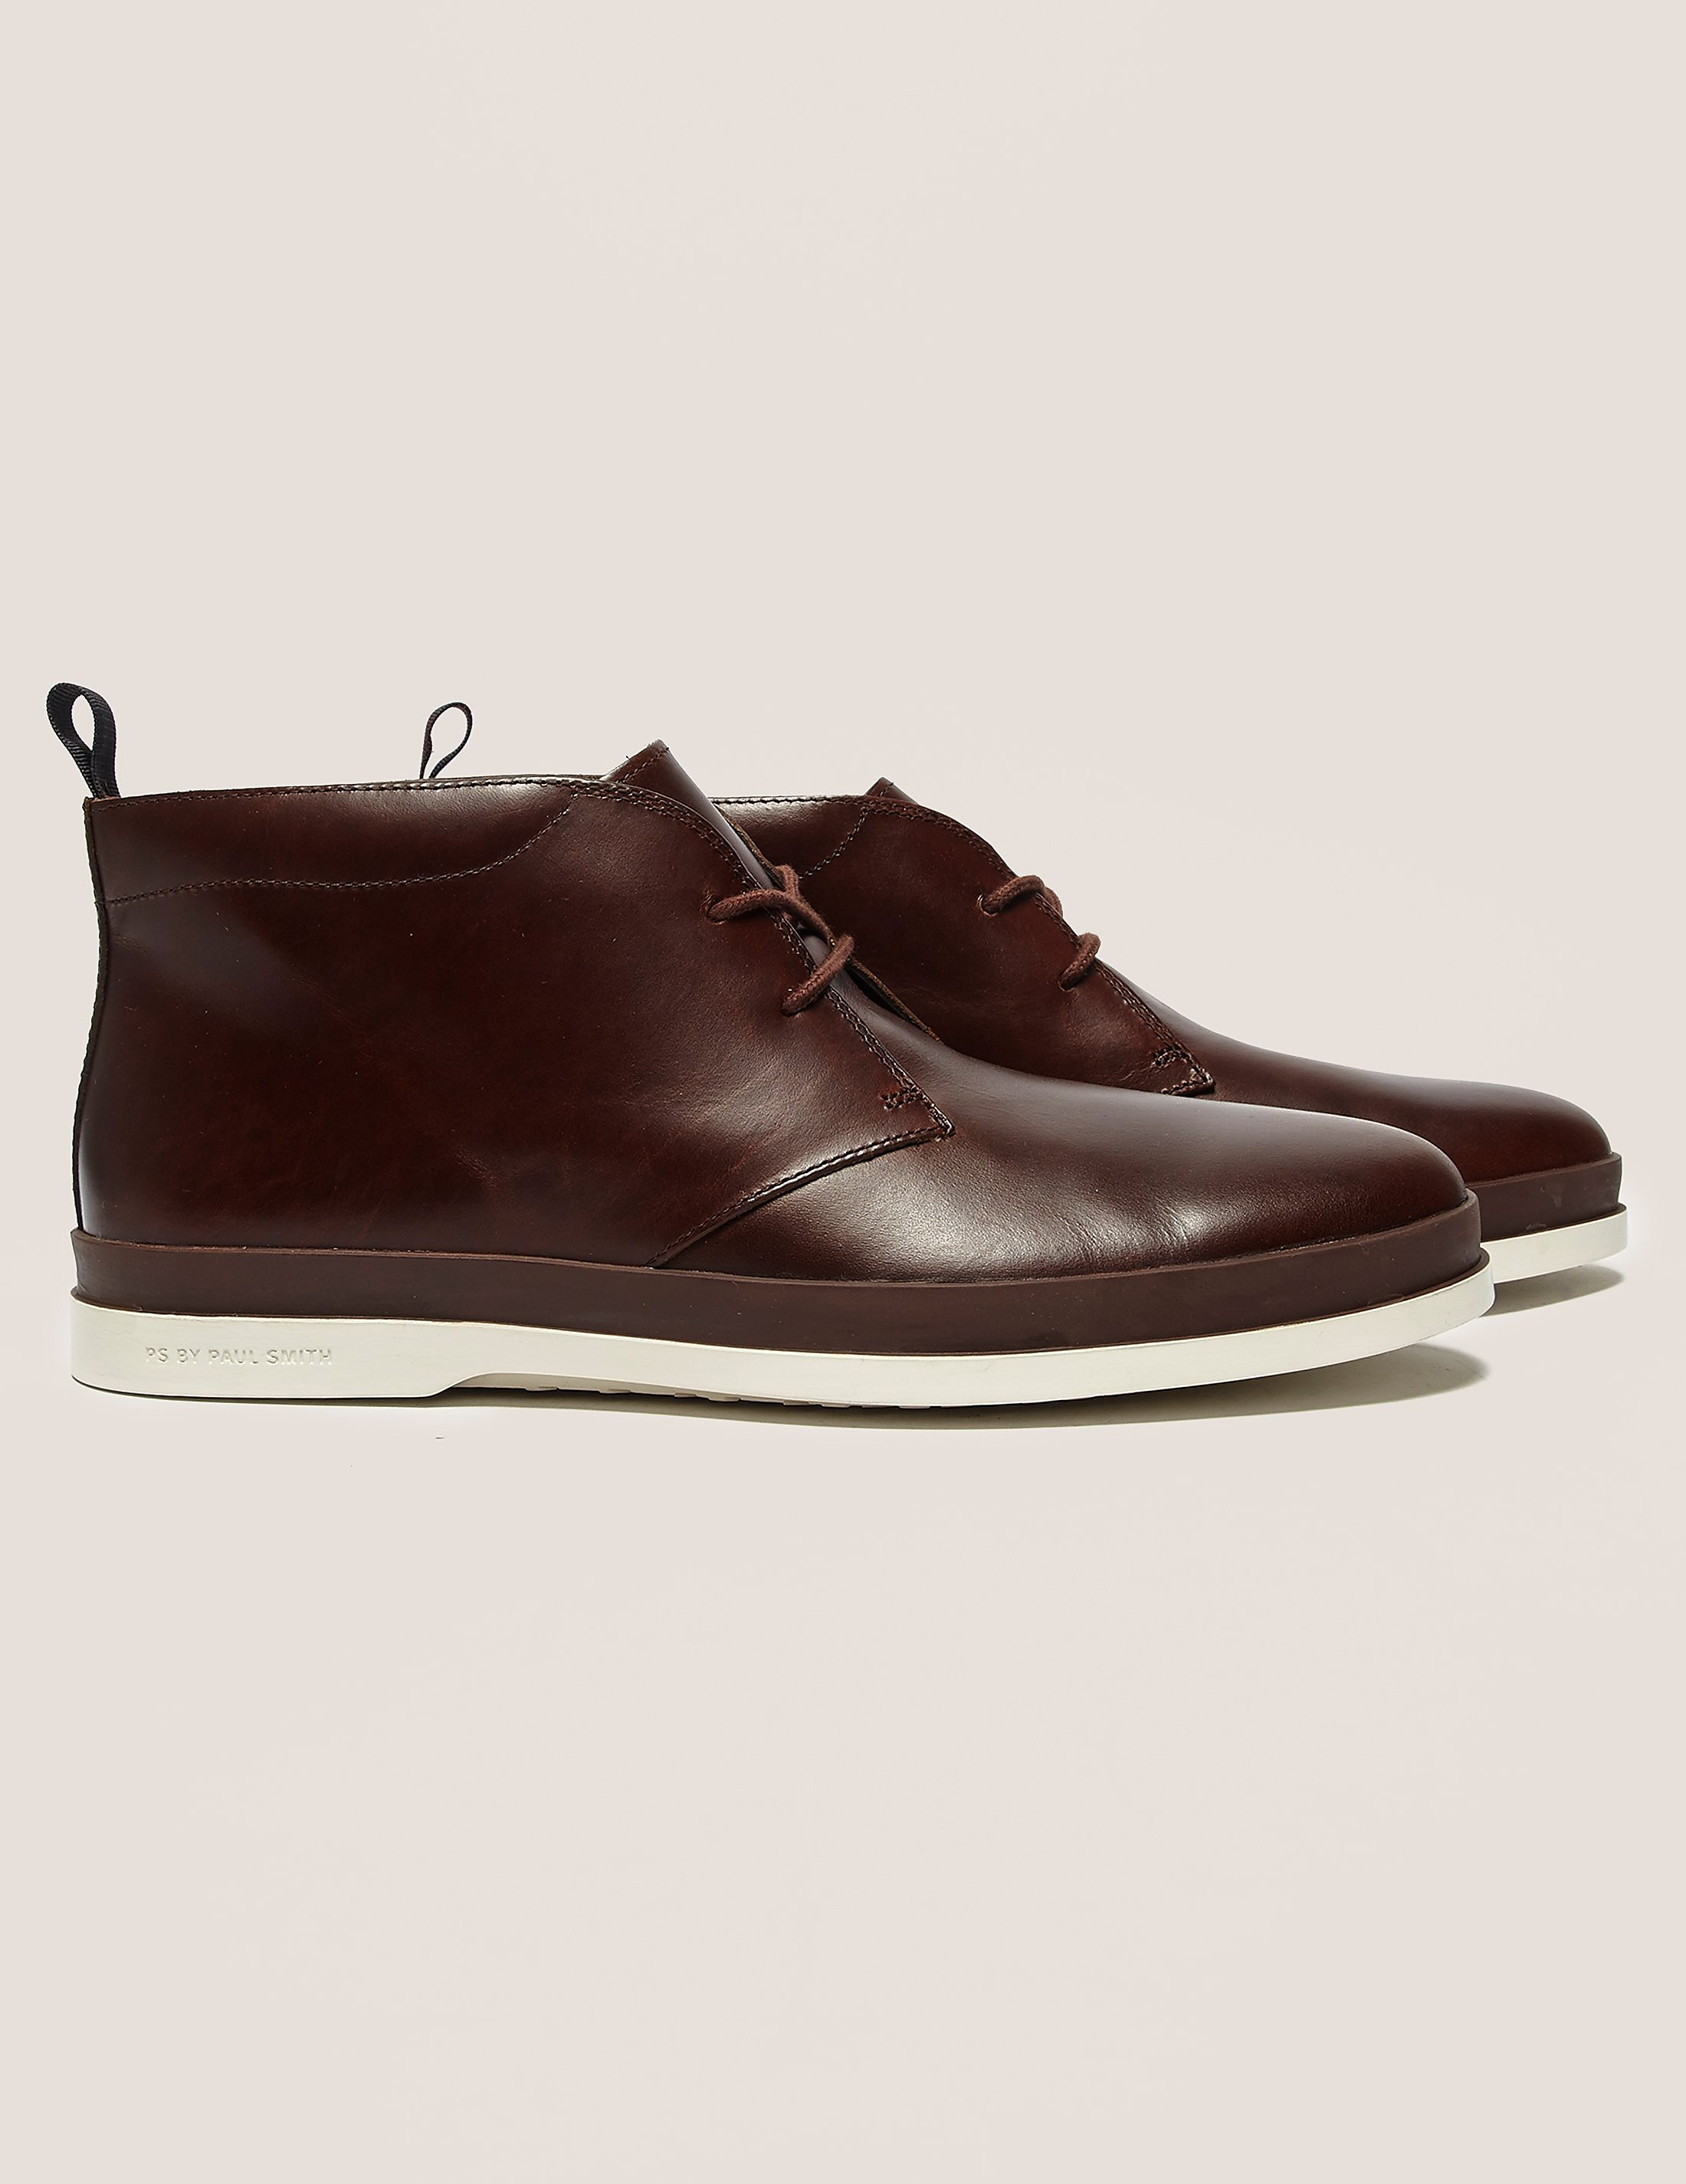 Paul Smith Inkie Chukka Boots